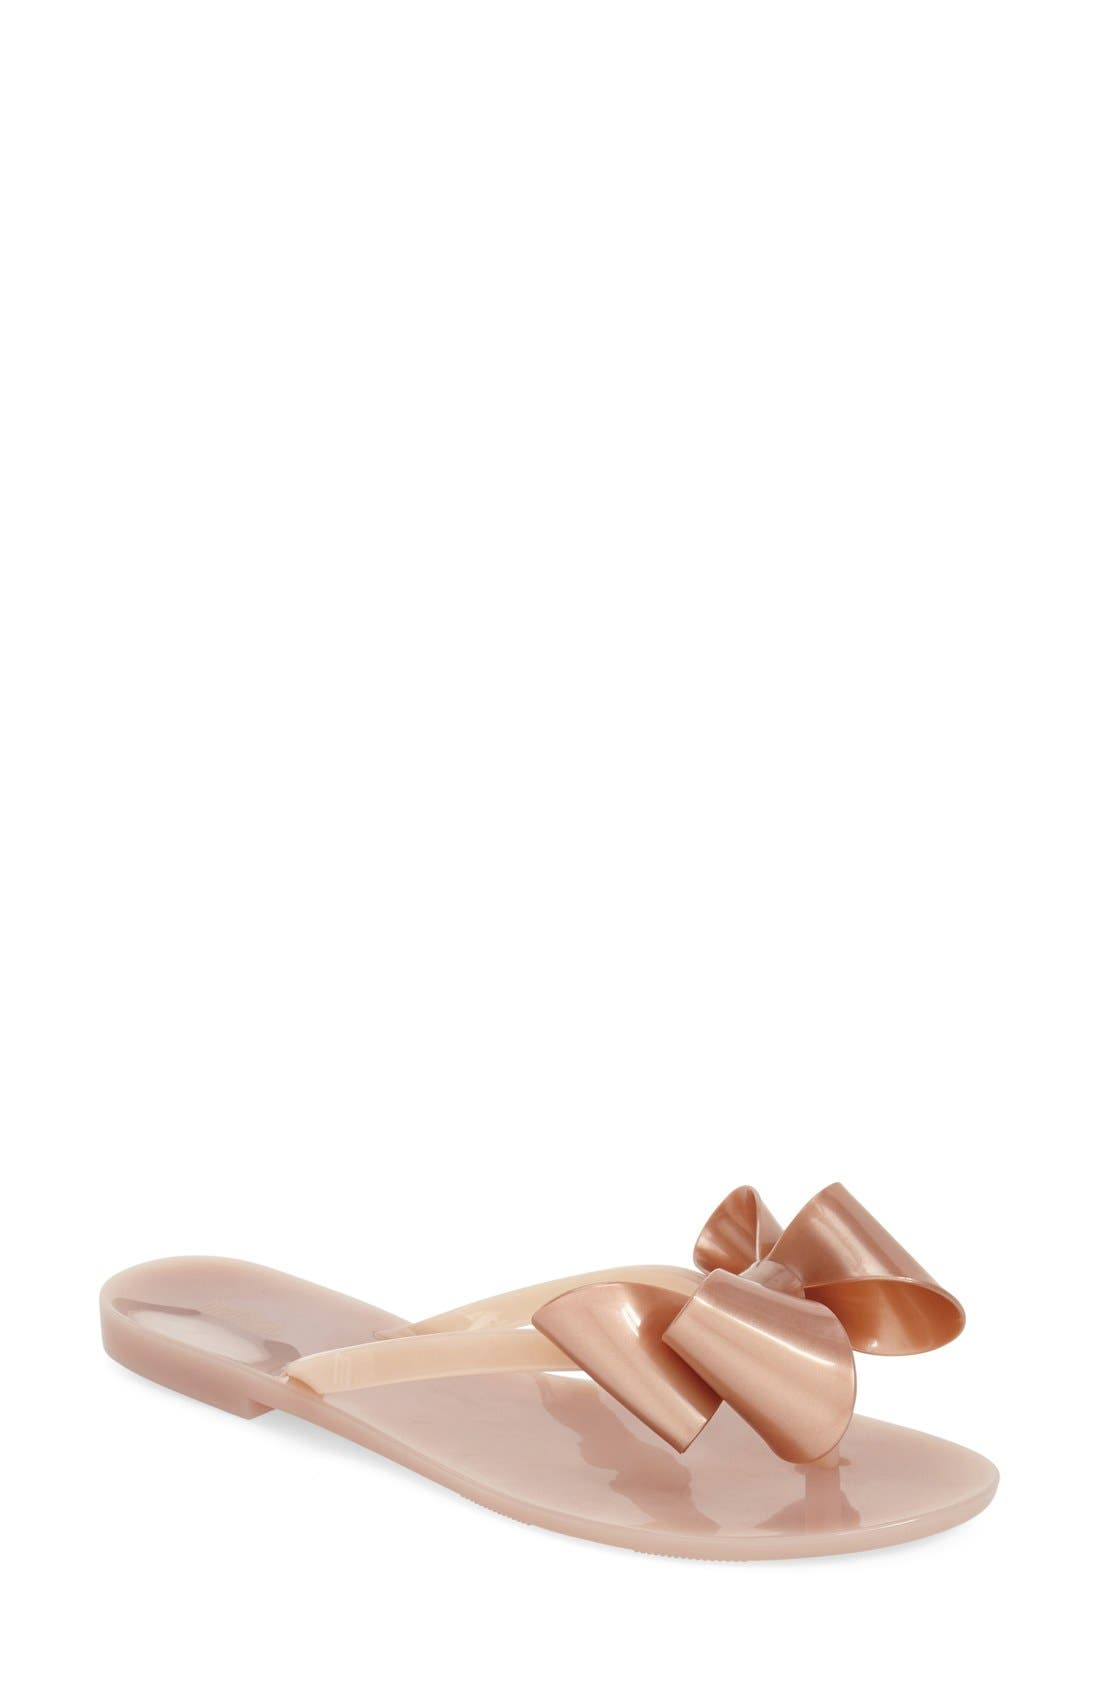 Alternate Image 1 Selected - Melissa 'Harmonic Bow' Jelly Thong Sandal (Women)